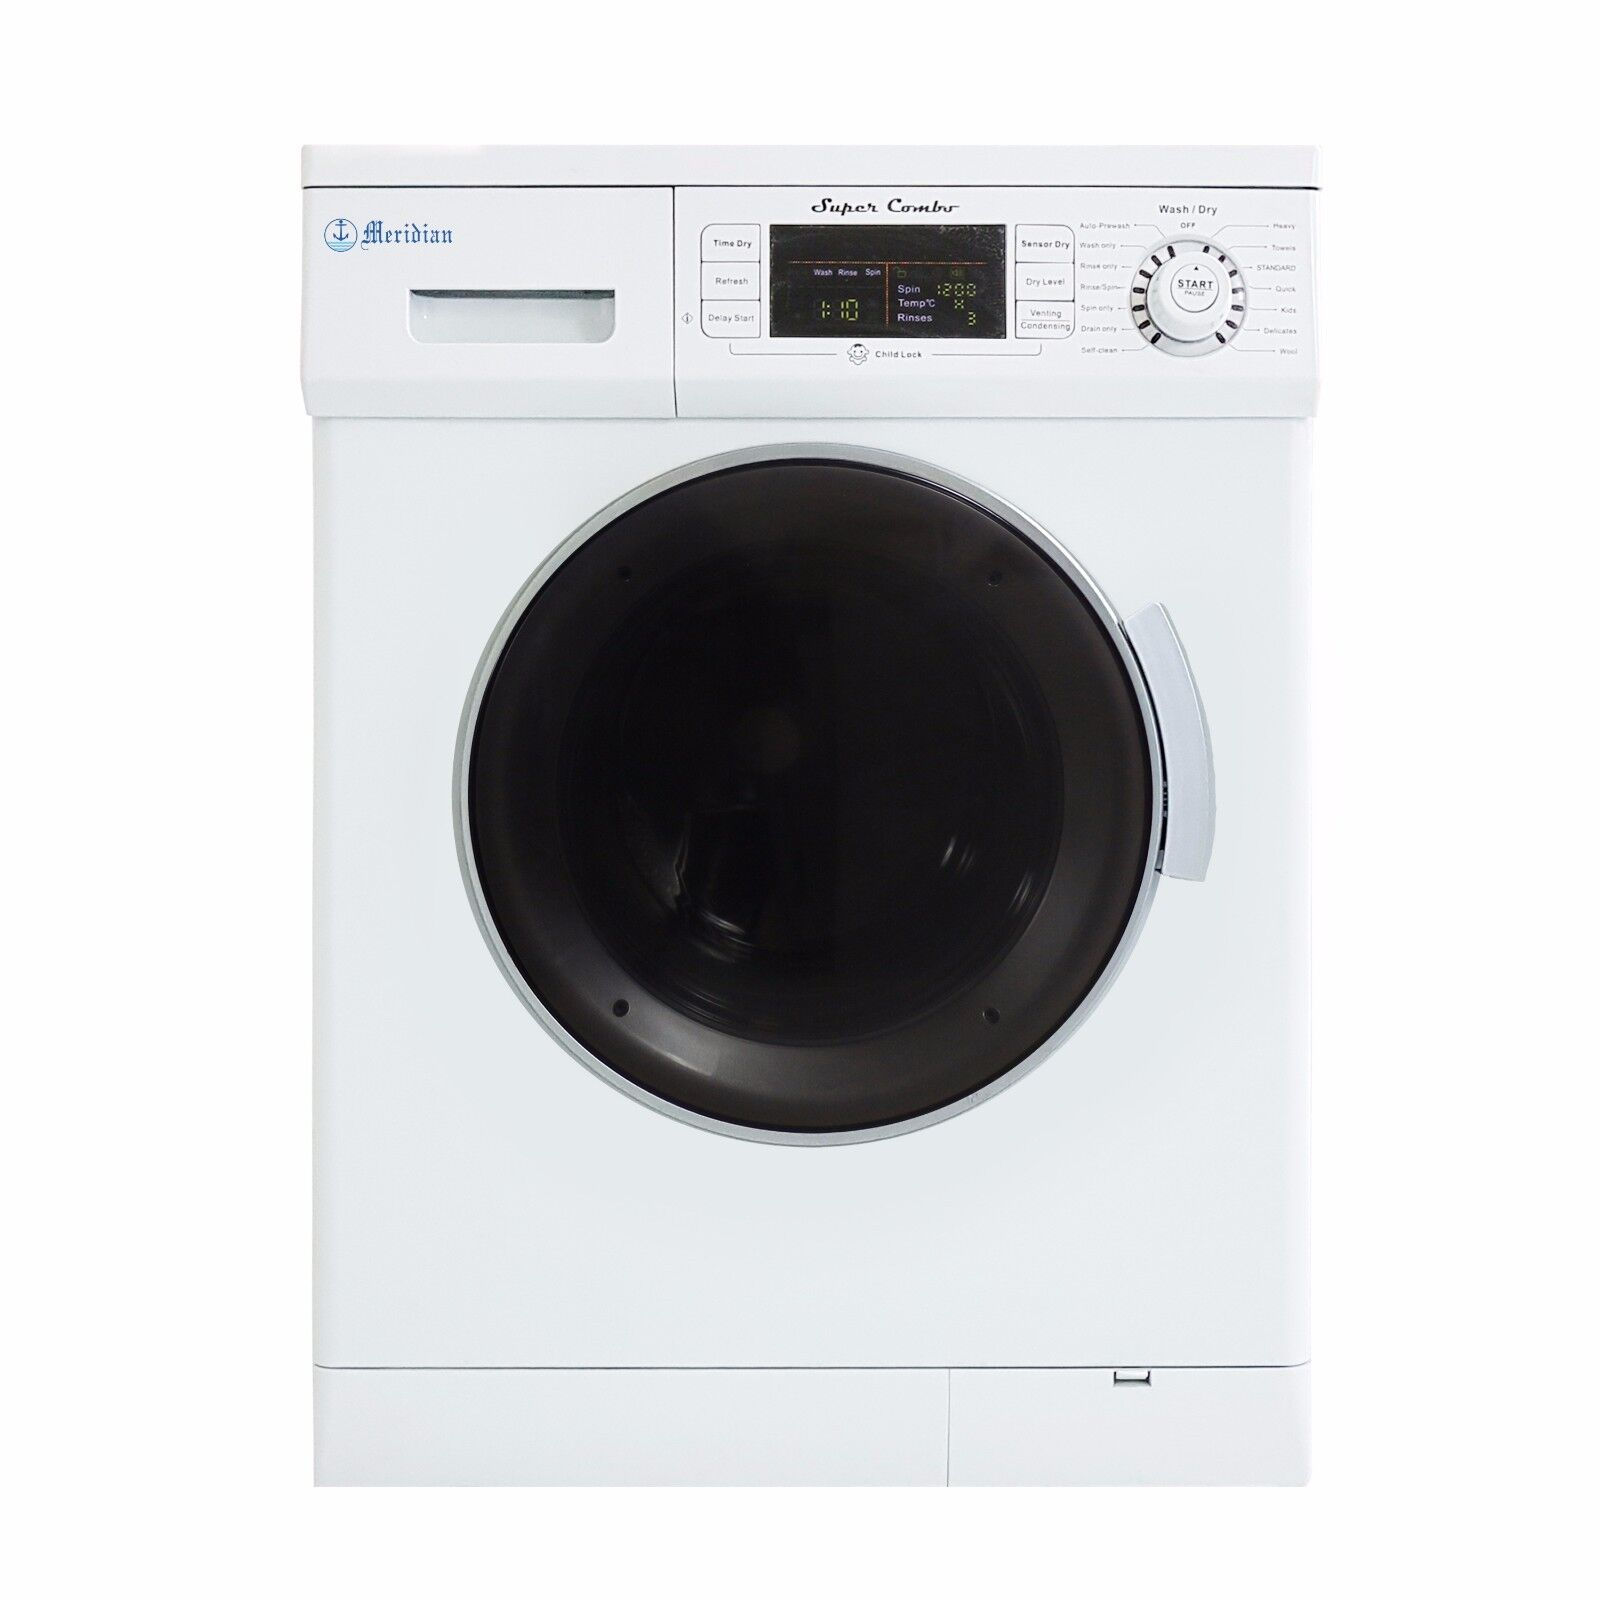 All-in-One 1.6 cu. ft. Consolidated Combo Washer and Electric Dryer with Optional Con